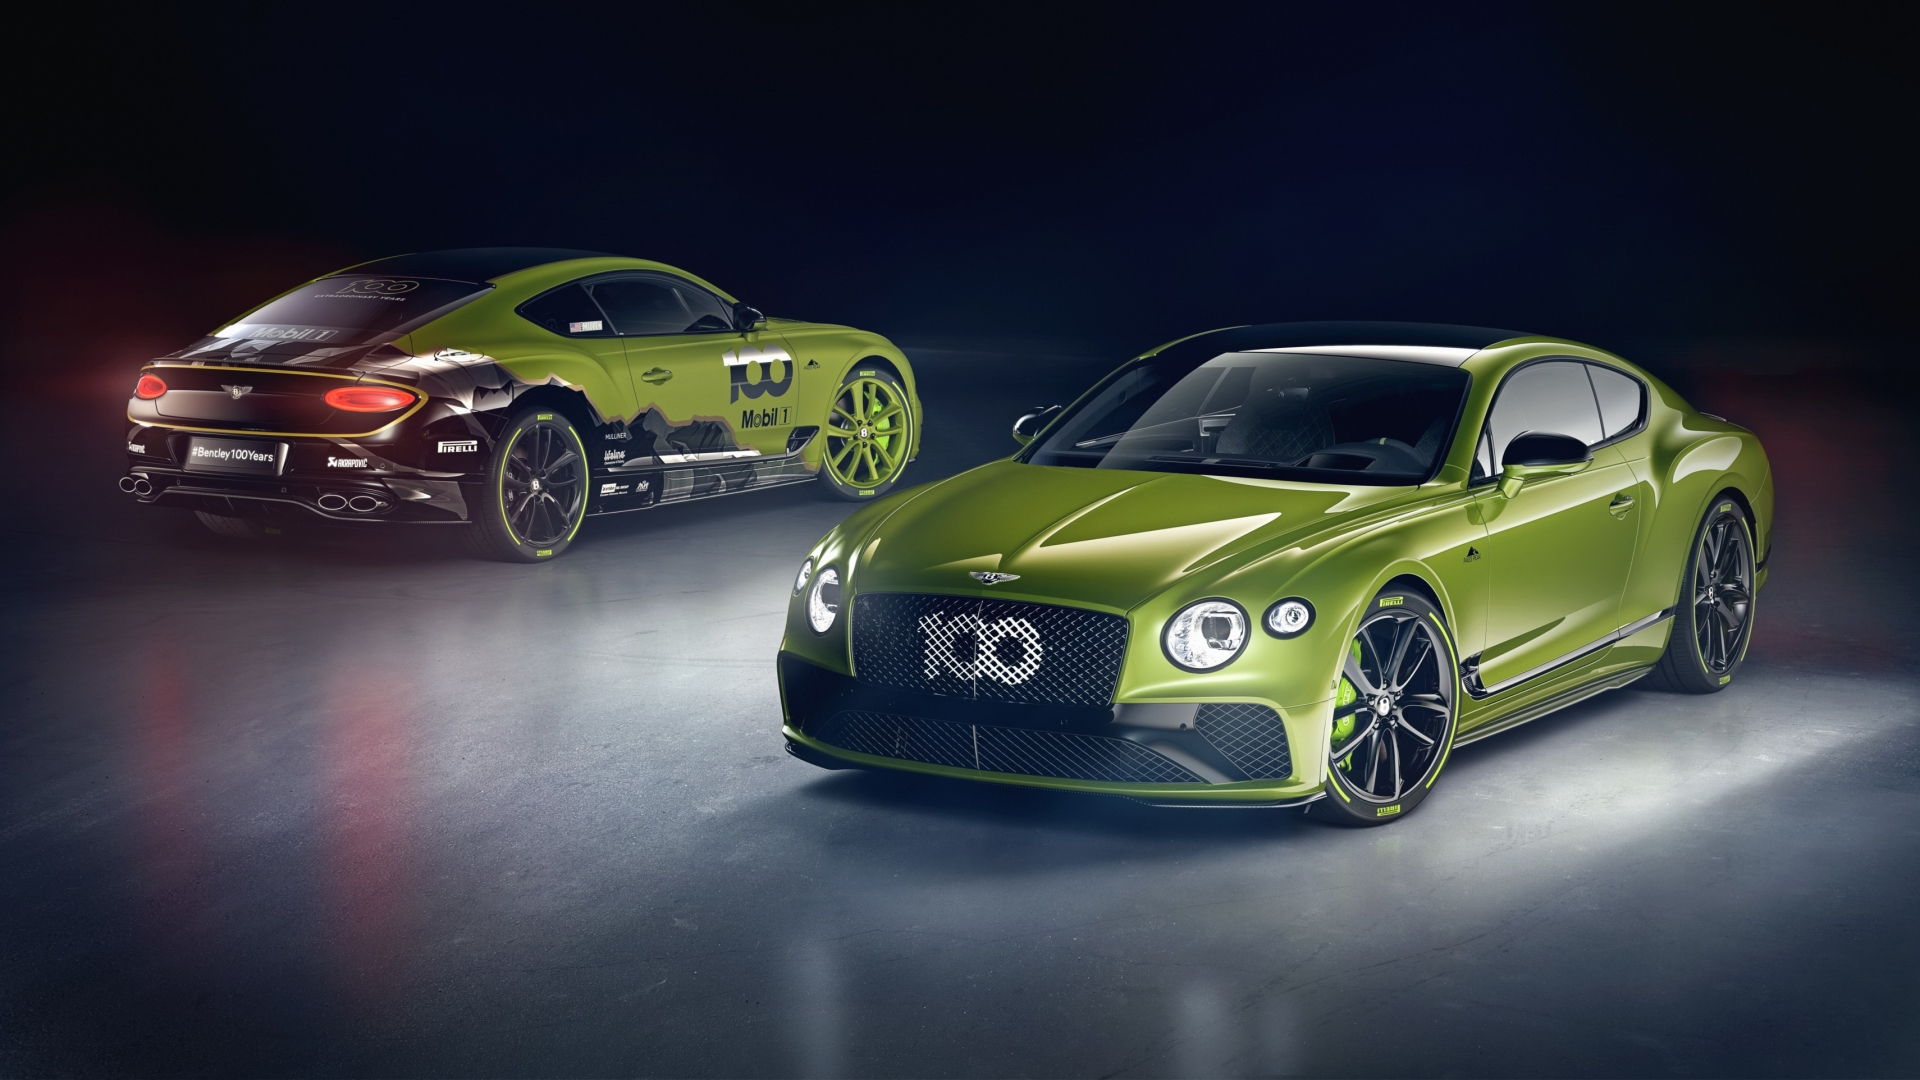 Bentley launches a limited edition of its Continental GT